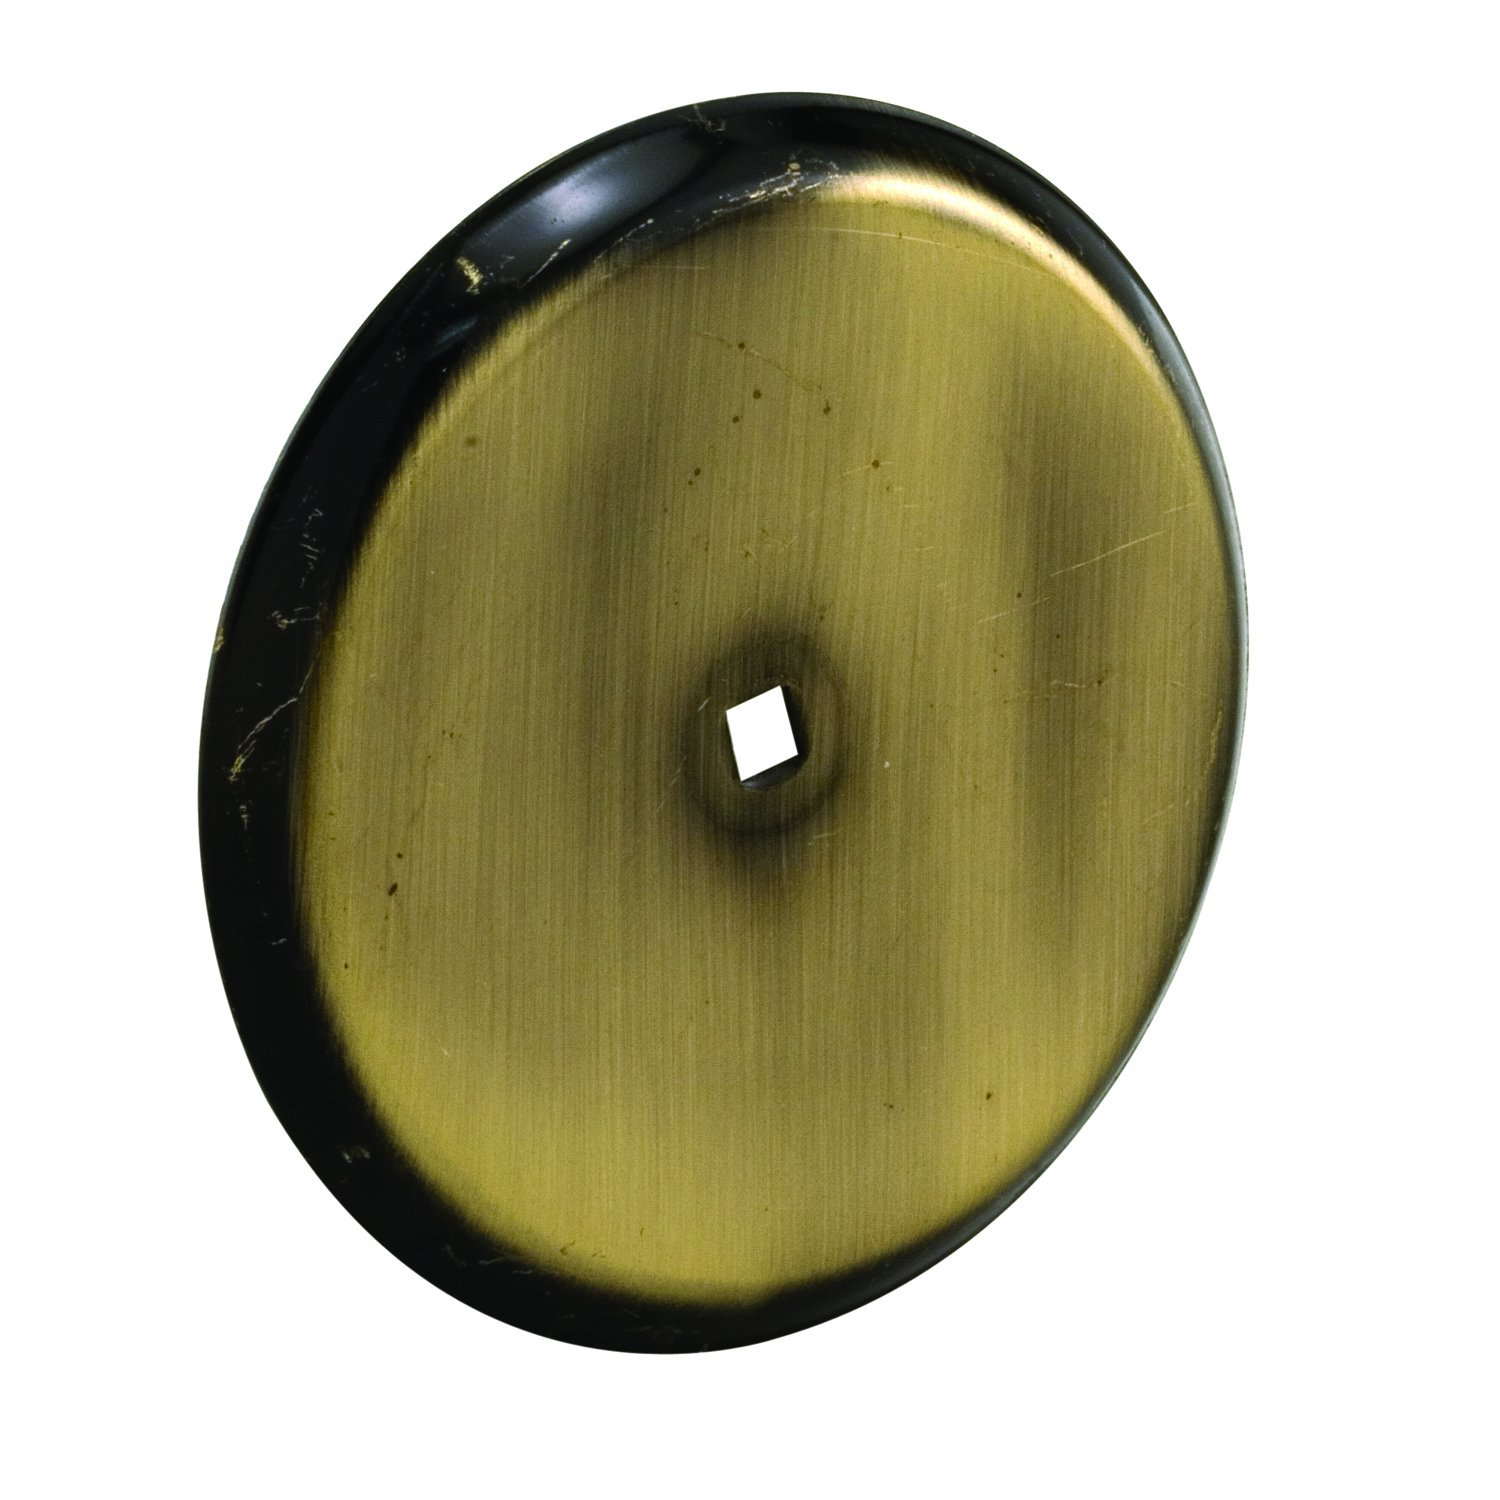 Prime-Line MP9201 Cabinet Knob Backplate, 2-13/16 in. Outside Diameter, Stamped Steel, Antique Brass Finish, Pack of 5